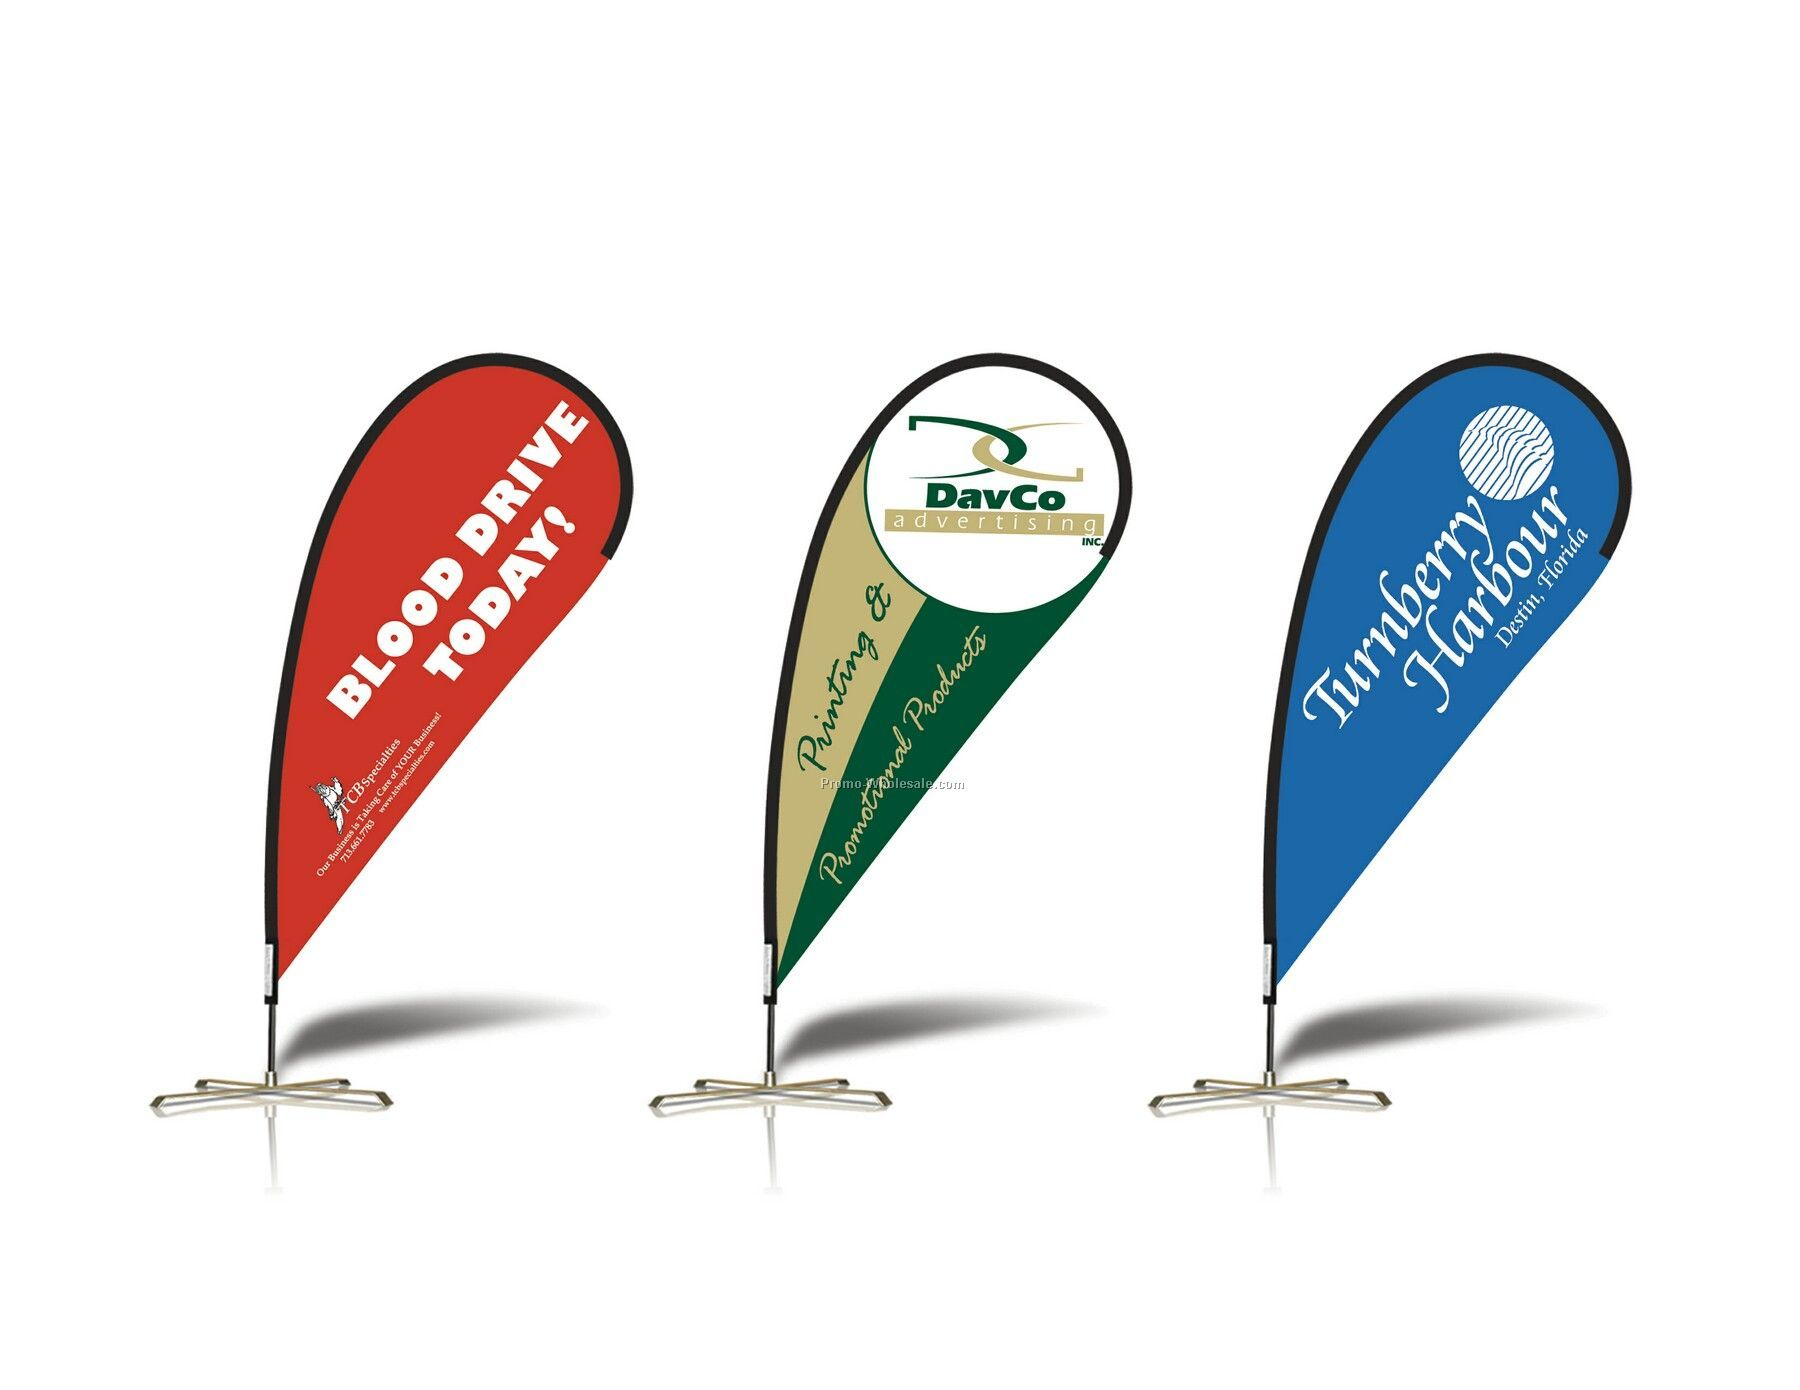 teardrop flag template - banners china wholesale banners page7